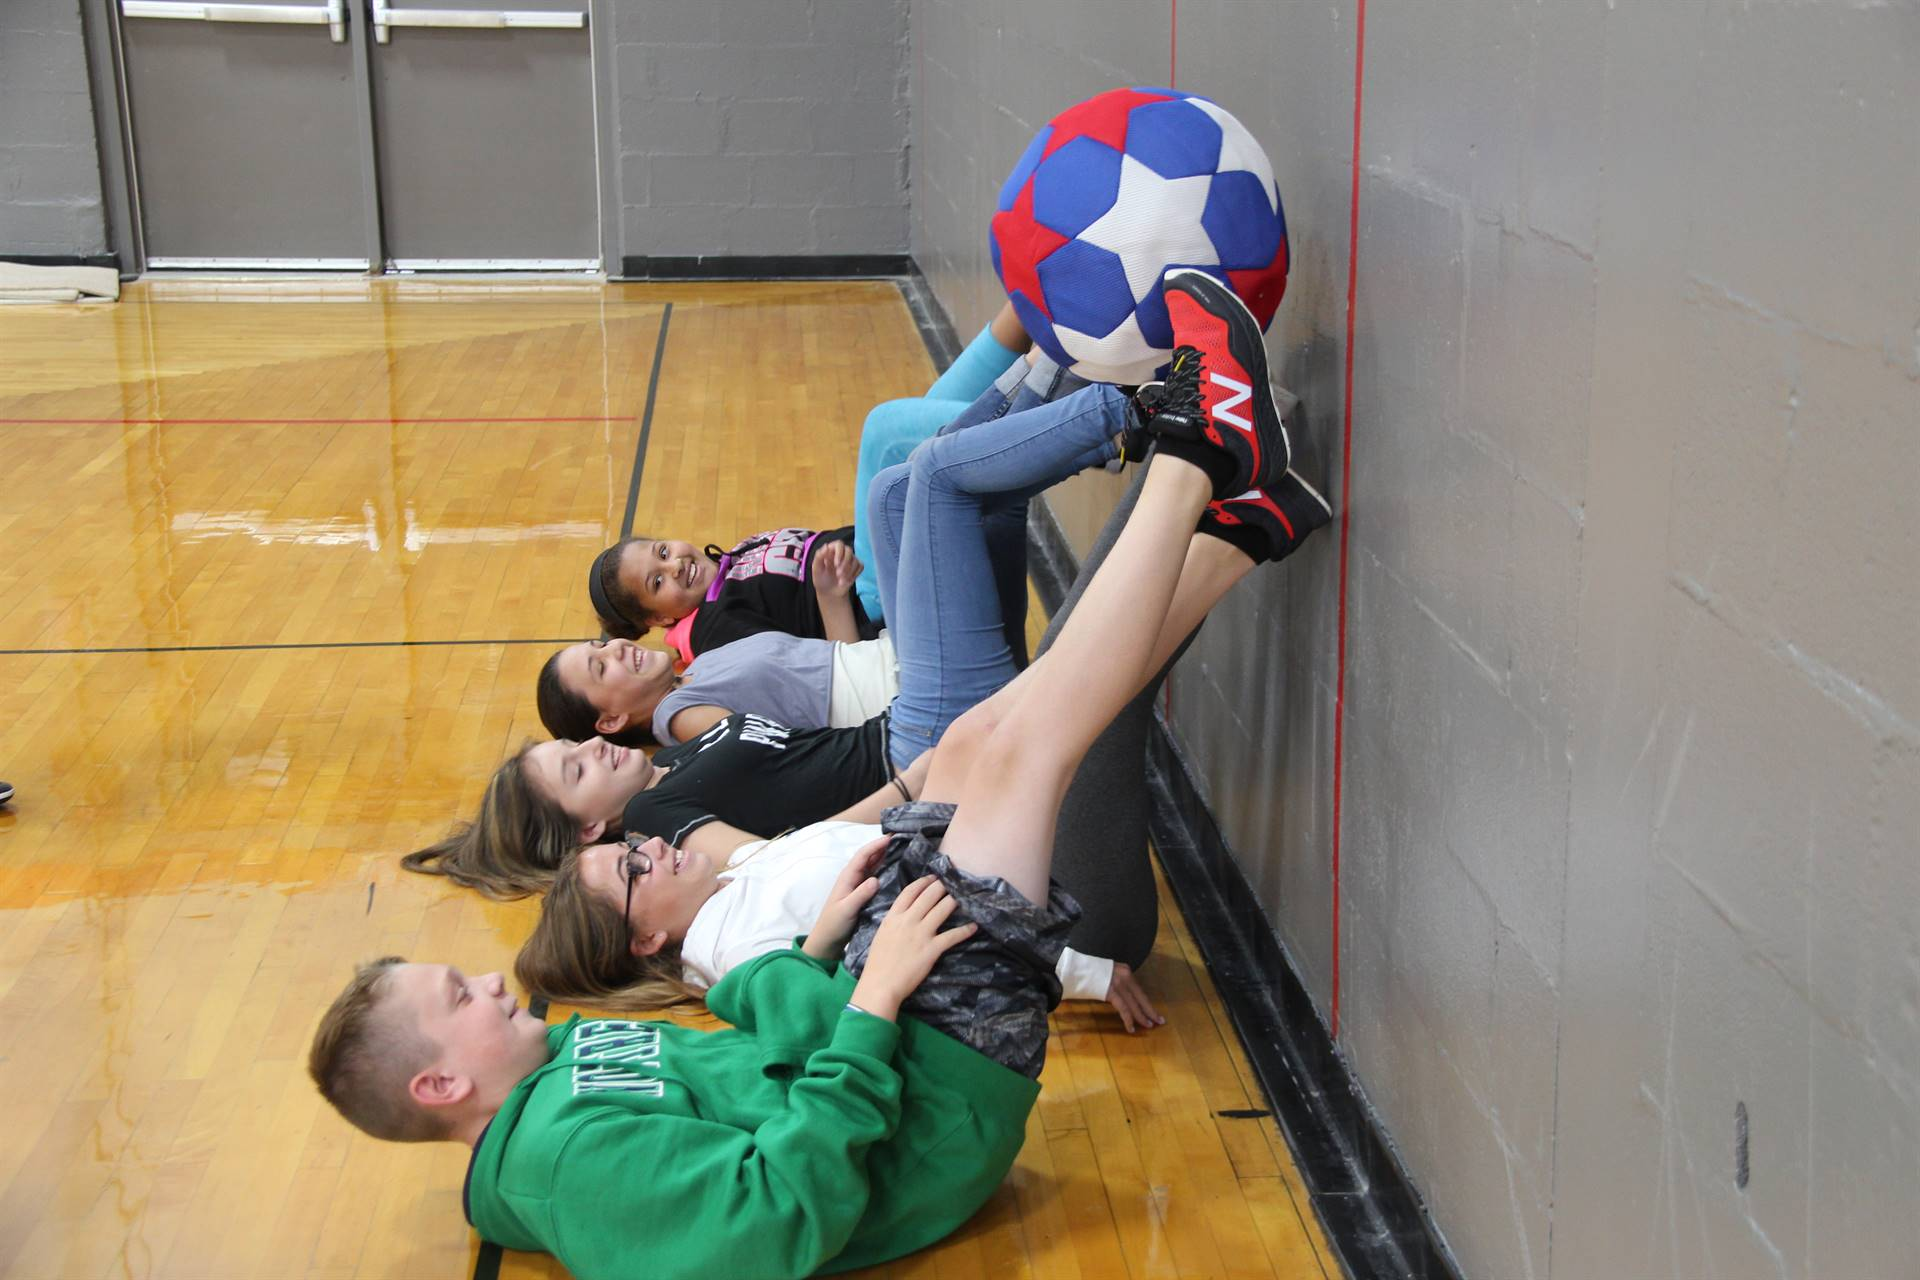 middle school students work together to move ball as part of team building exercise